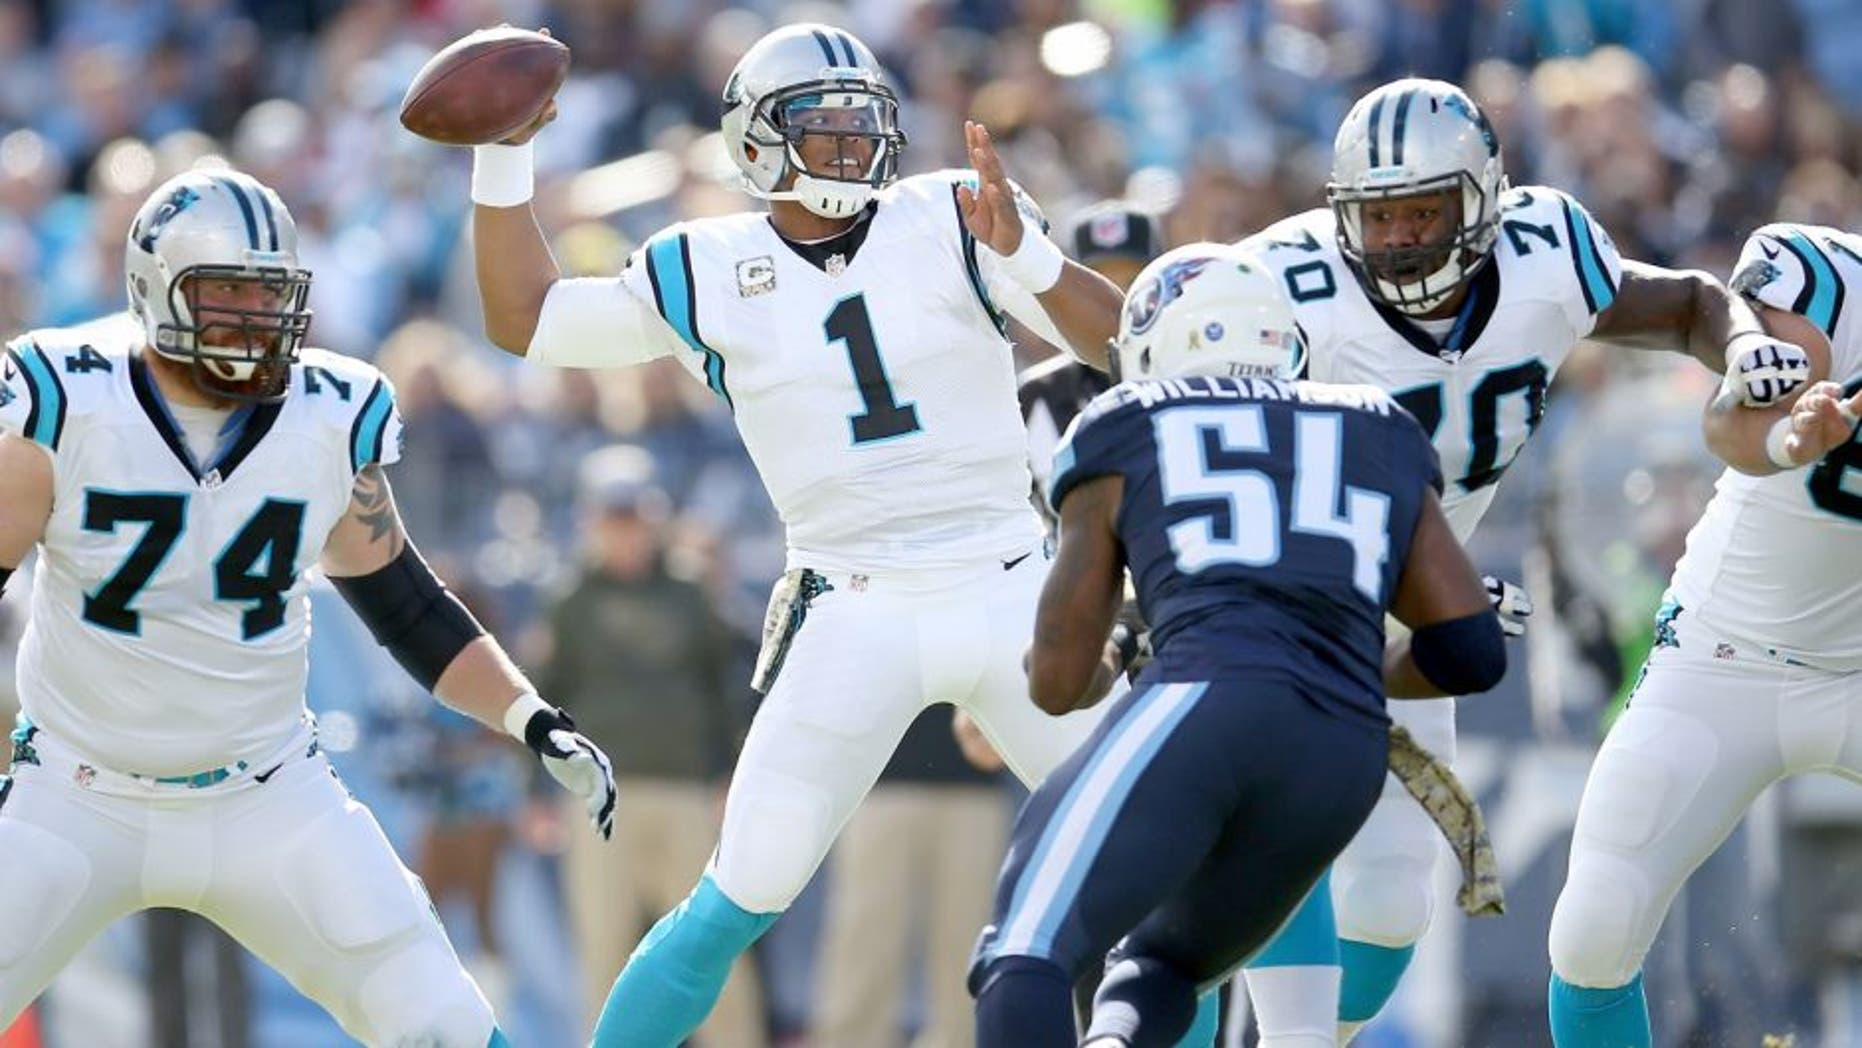 NASHVILLE, TN - NOVEMBER 15: Cam Newton #1 of the Carolina Panthers throws a pass during the first quarter against the Tennessee Titans at LP Field on November 15, 2015 in Nashville, Tennessee. (Photo by Andy Lyons/Getty Images)